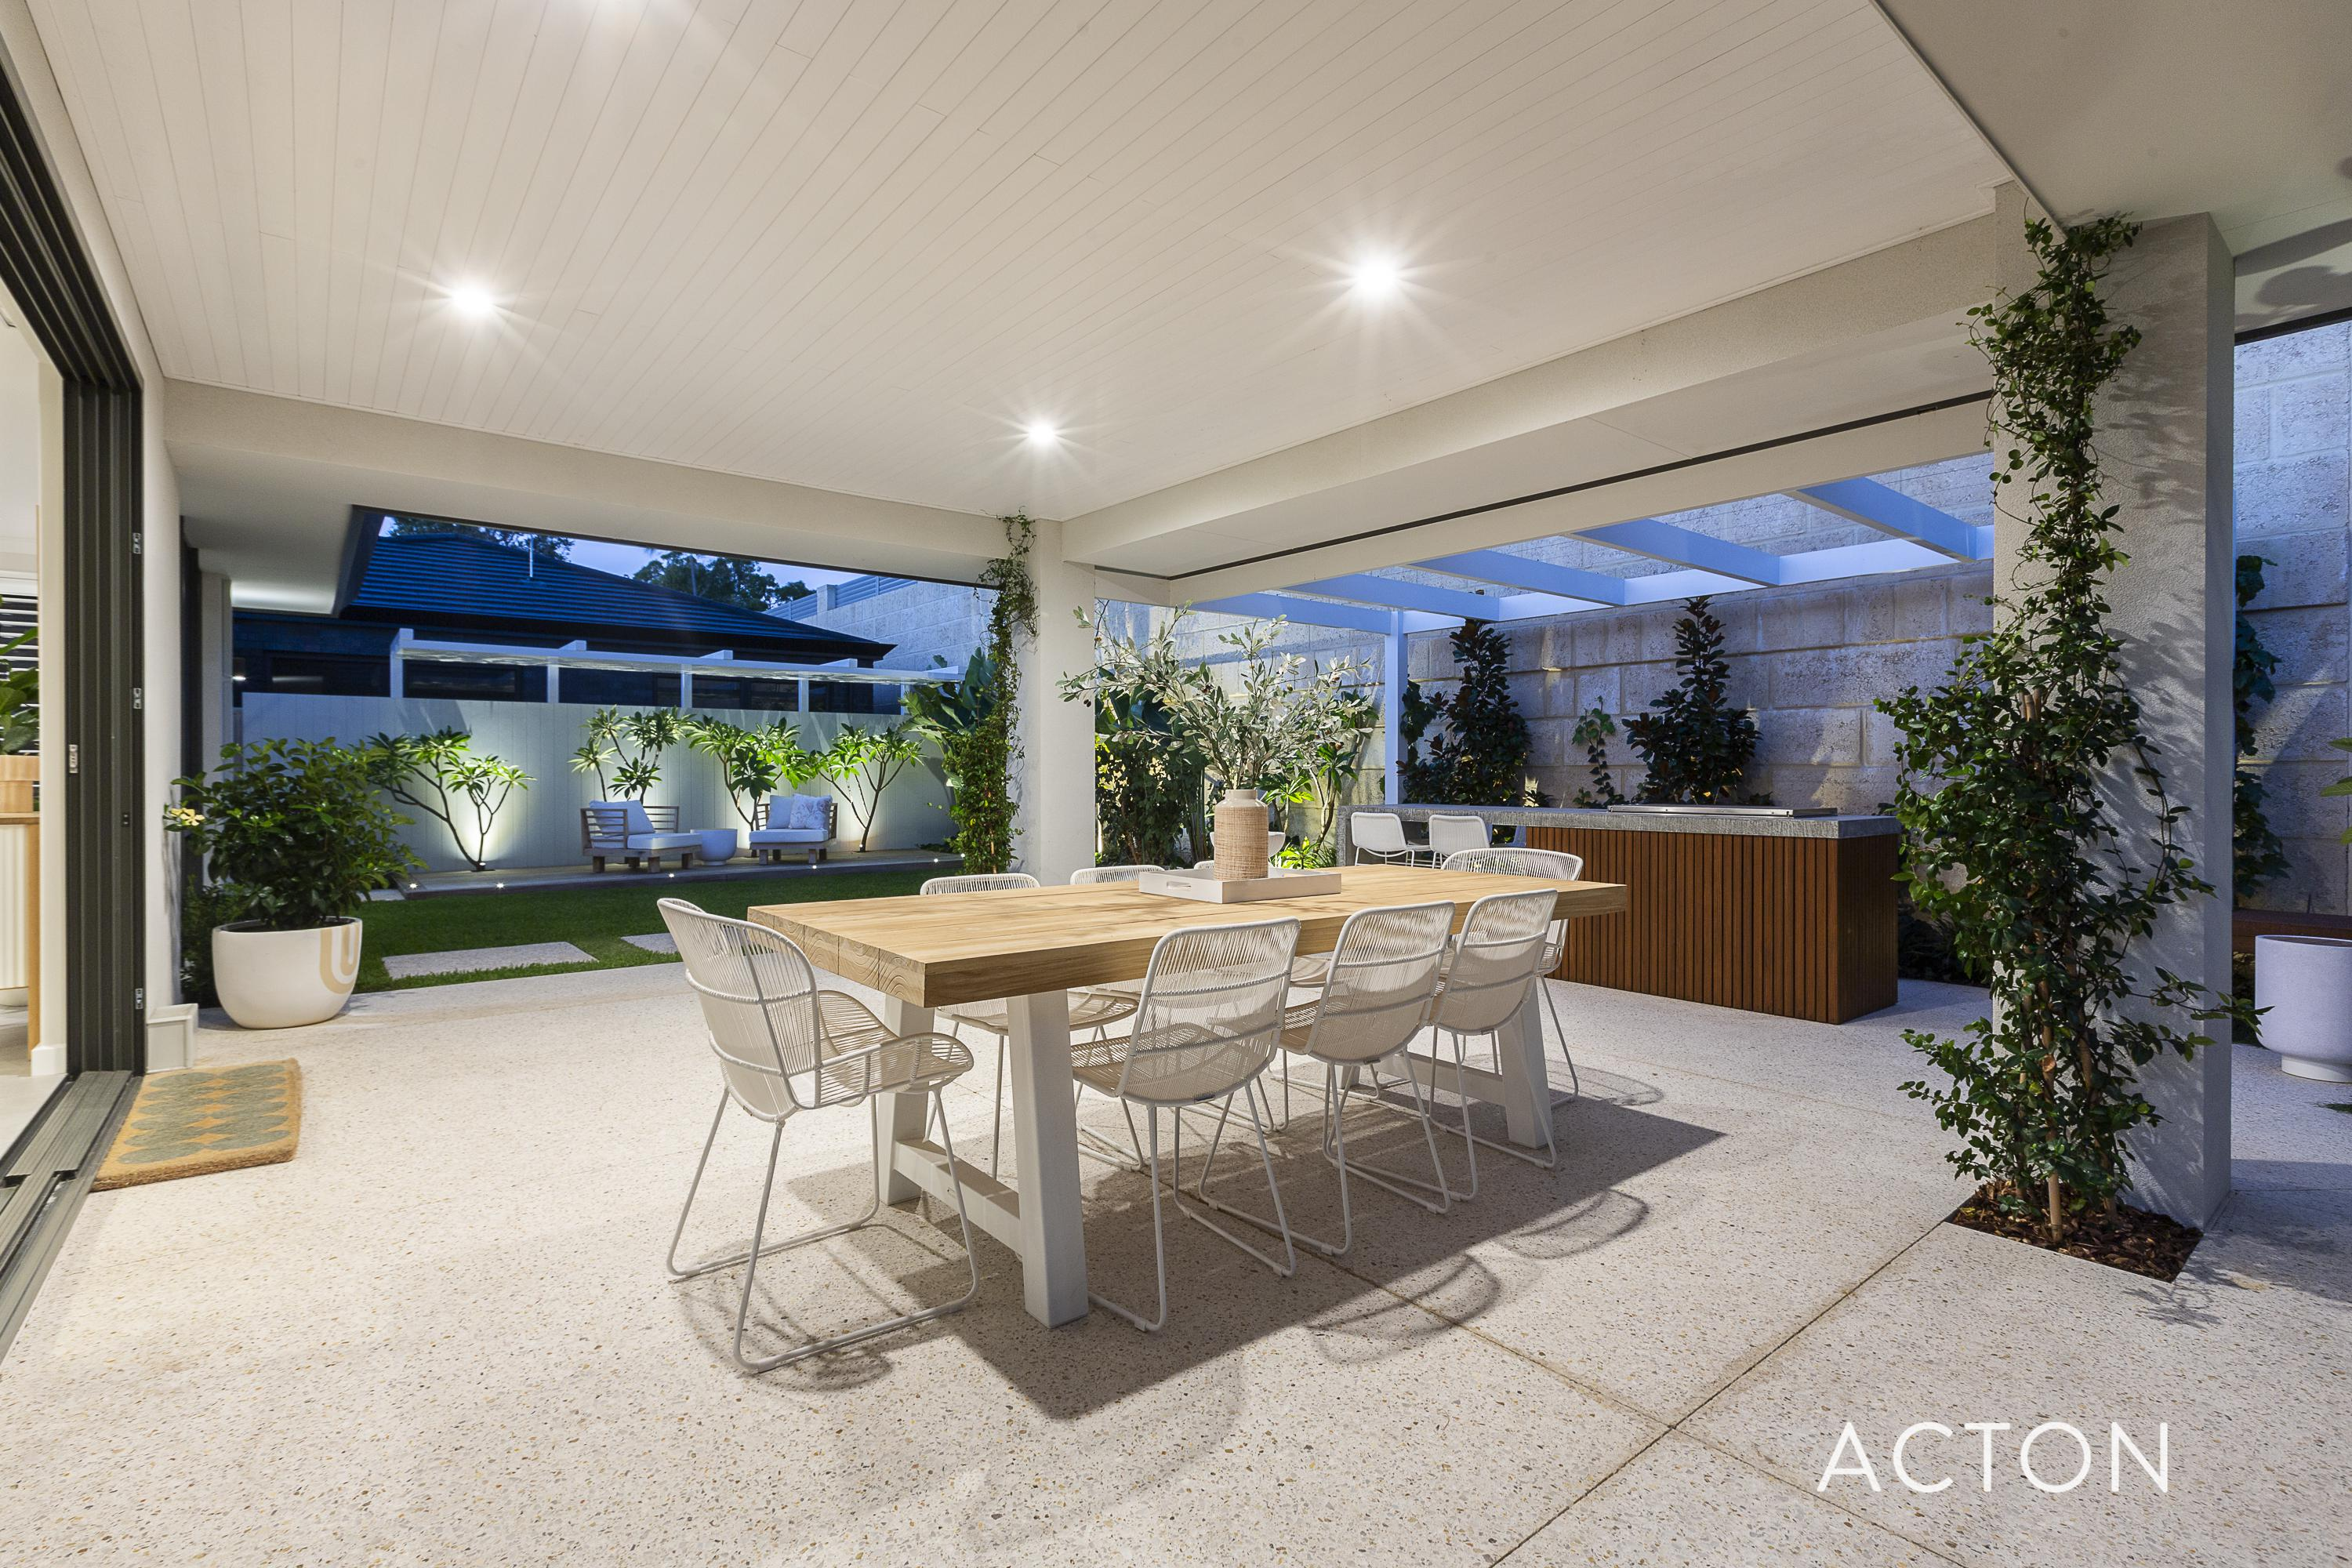 8 Sawyer Way Salter Point - House For Sale - 23039003 - Acton Southandvictoriapark